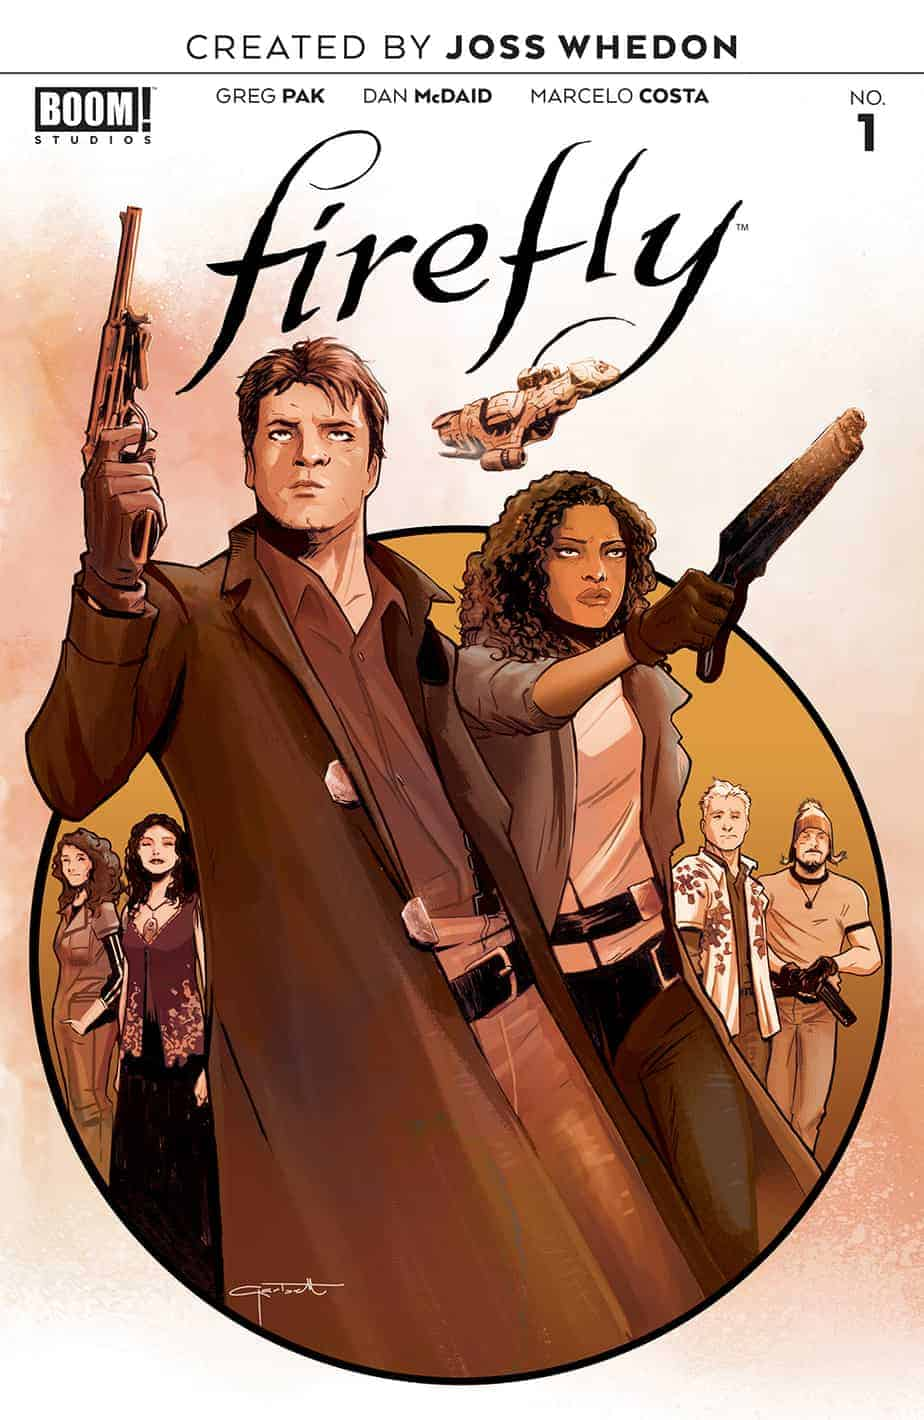 Firefly #1 - Main Cover A